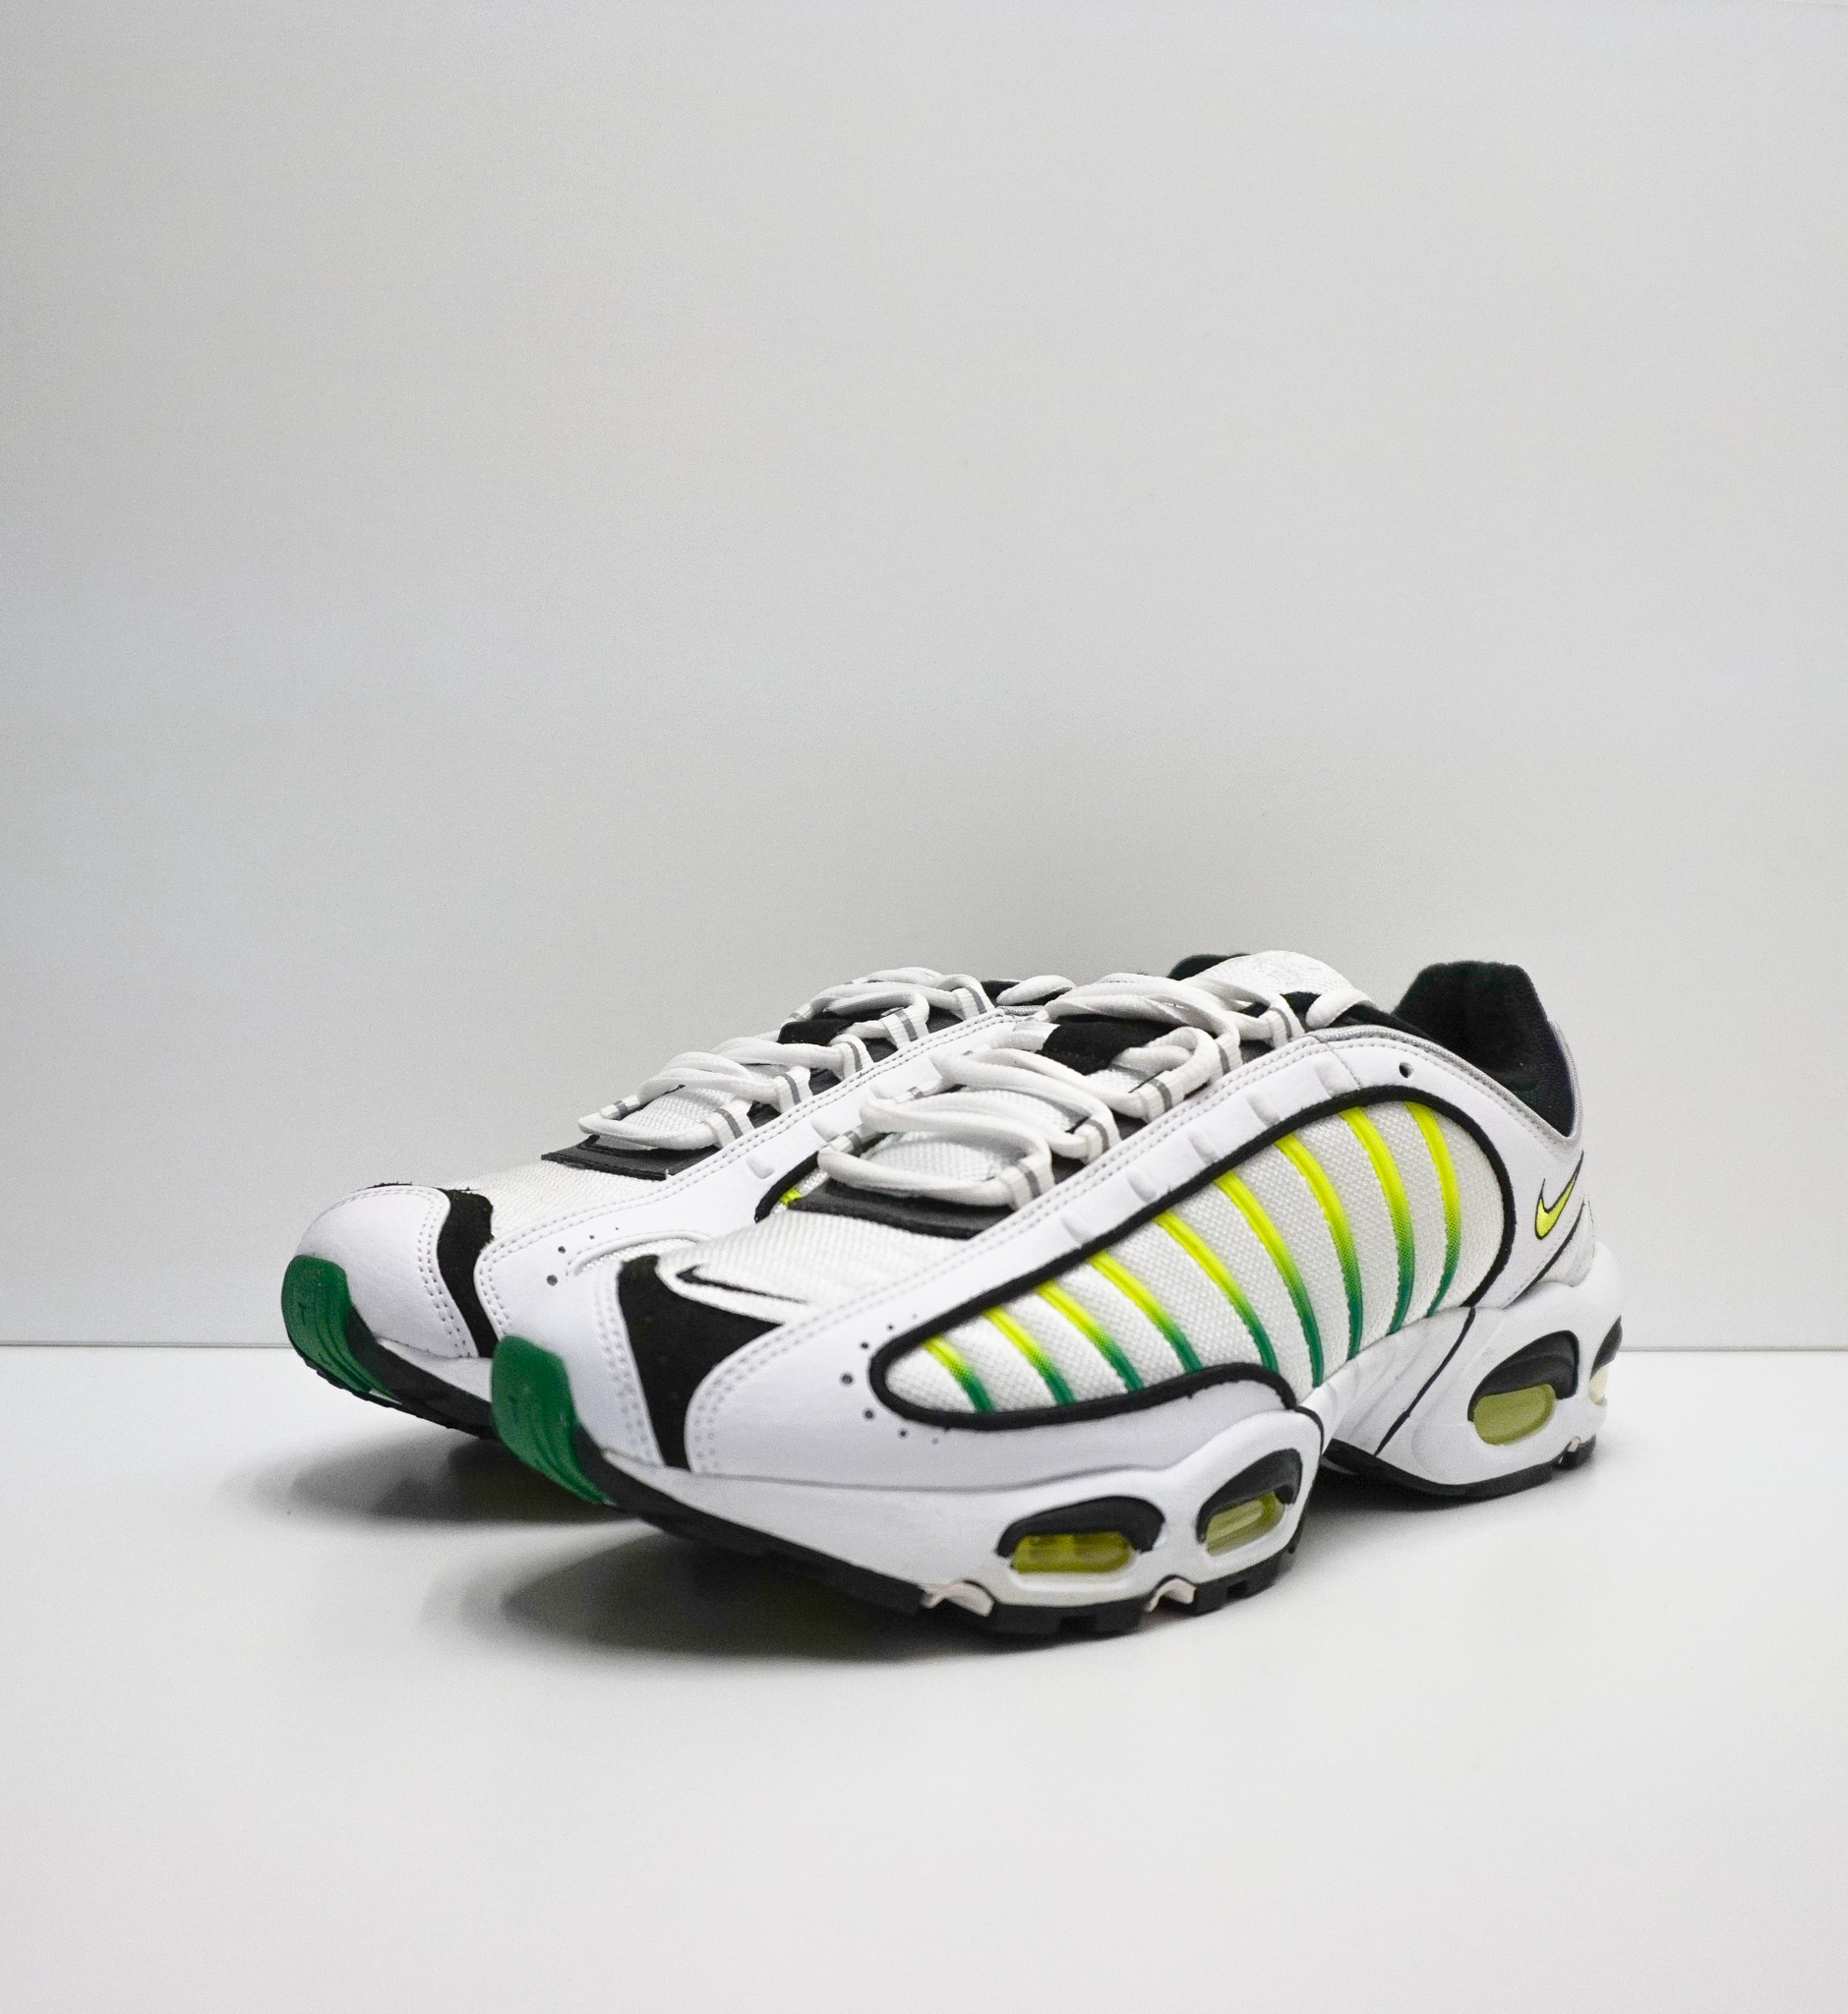 Nike Air Max Tailwind 4 White Volt Black